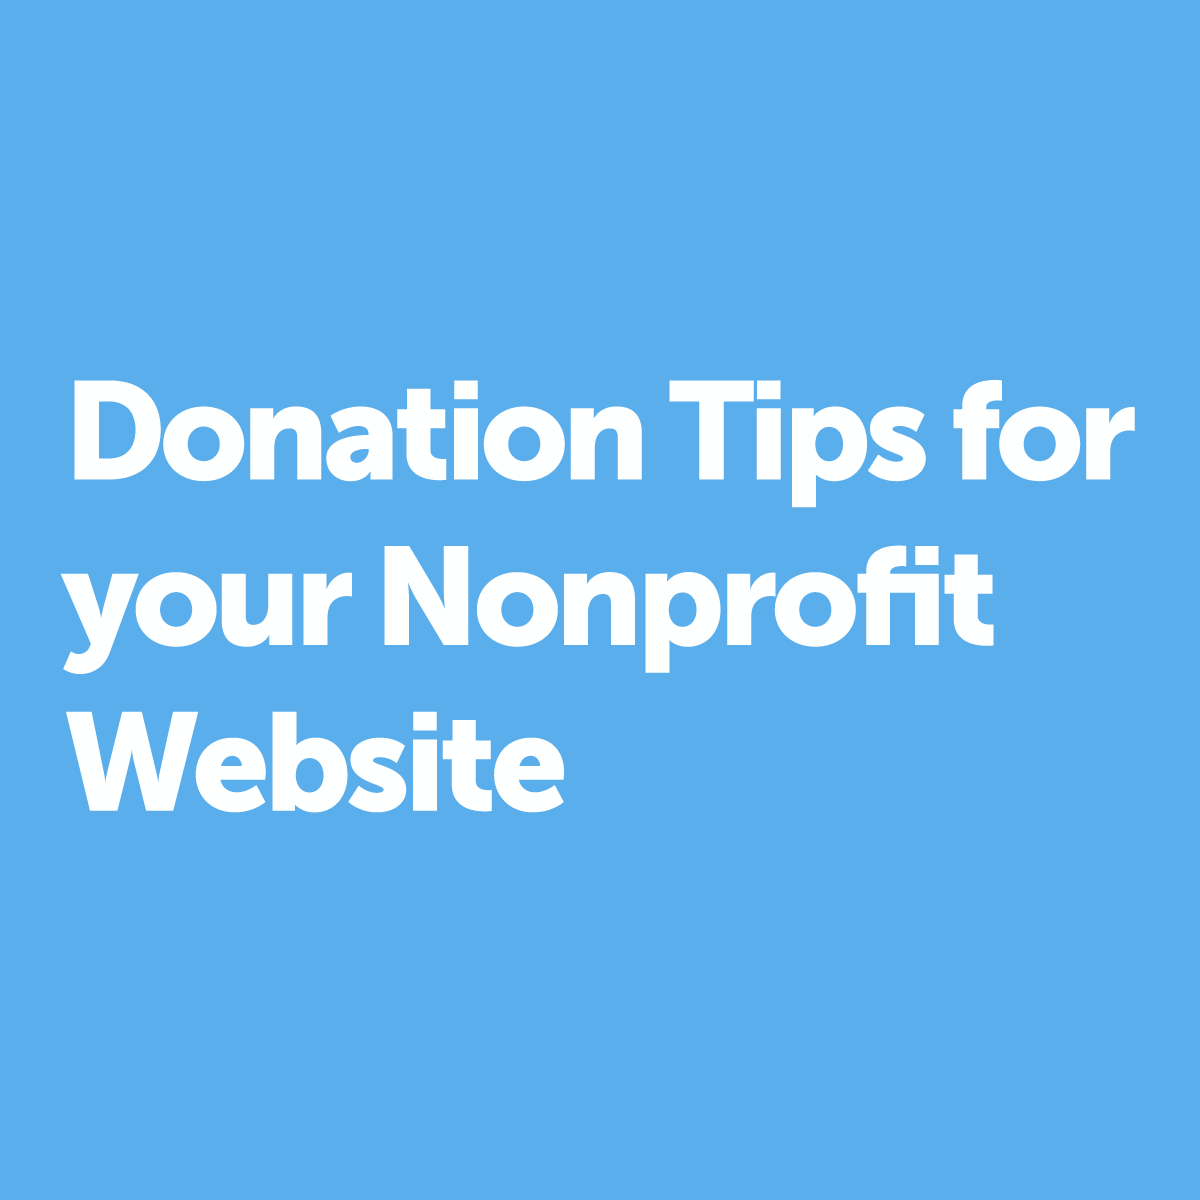 Donation Tips for your Nonprofit Website